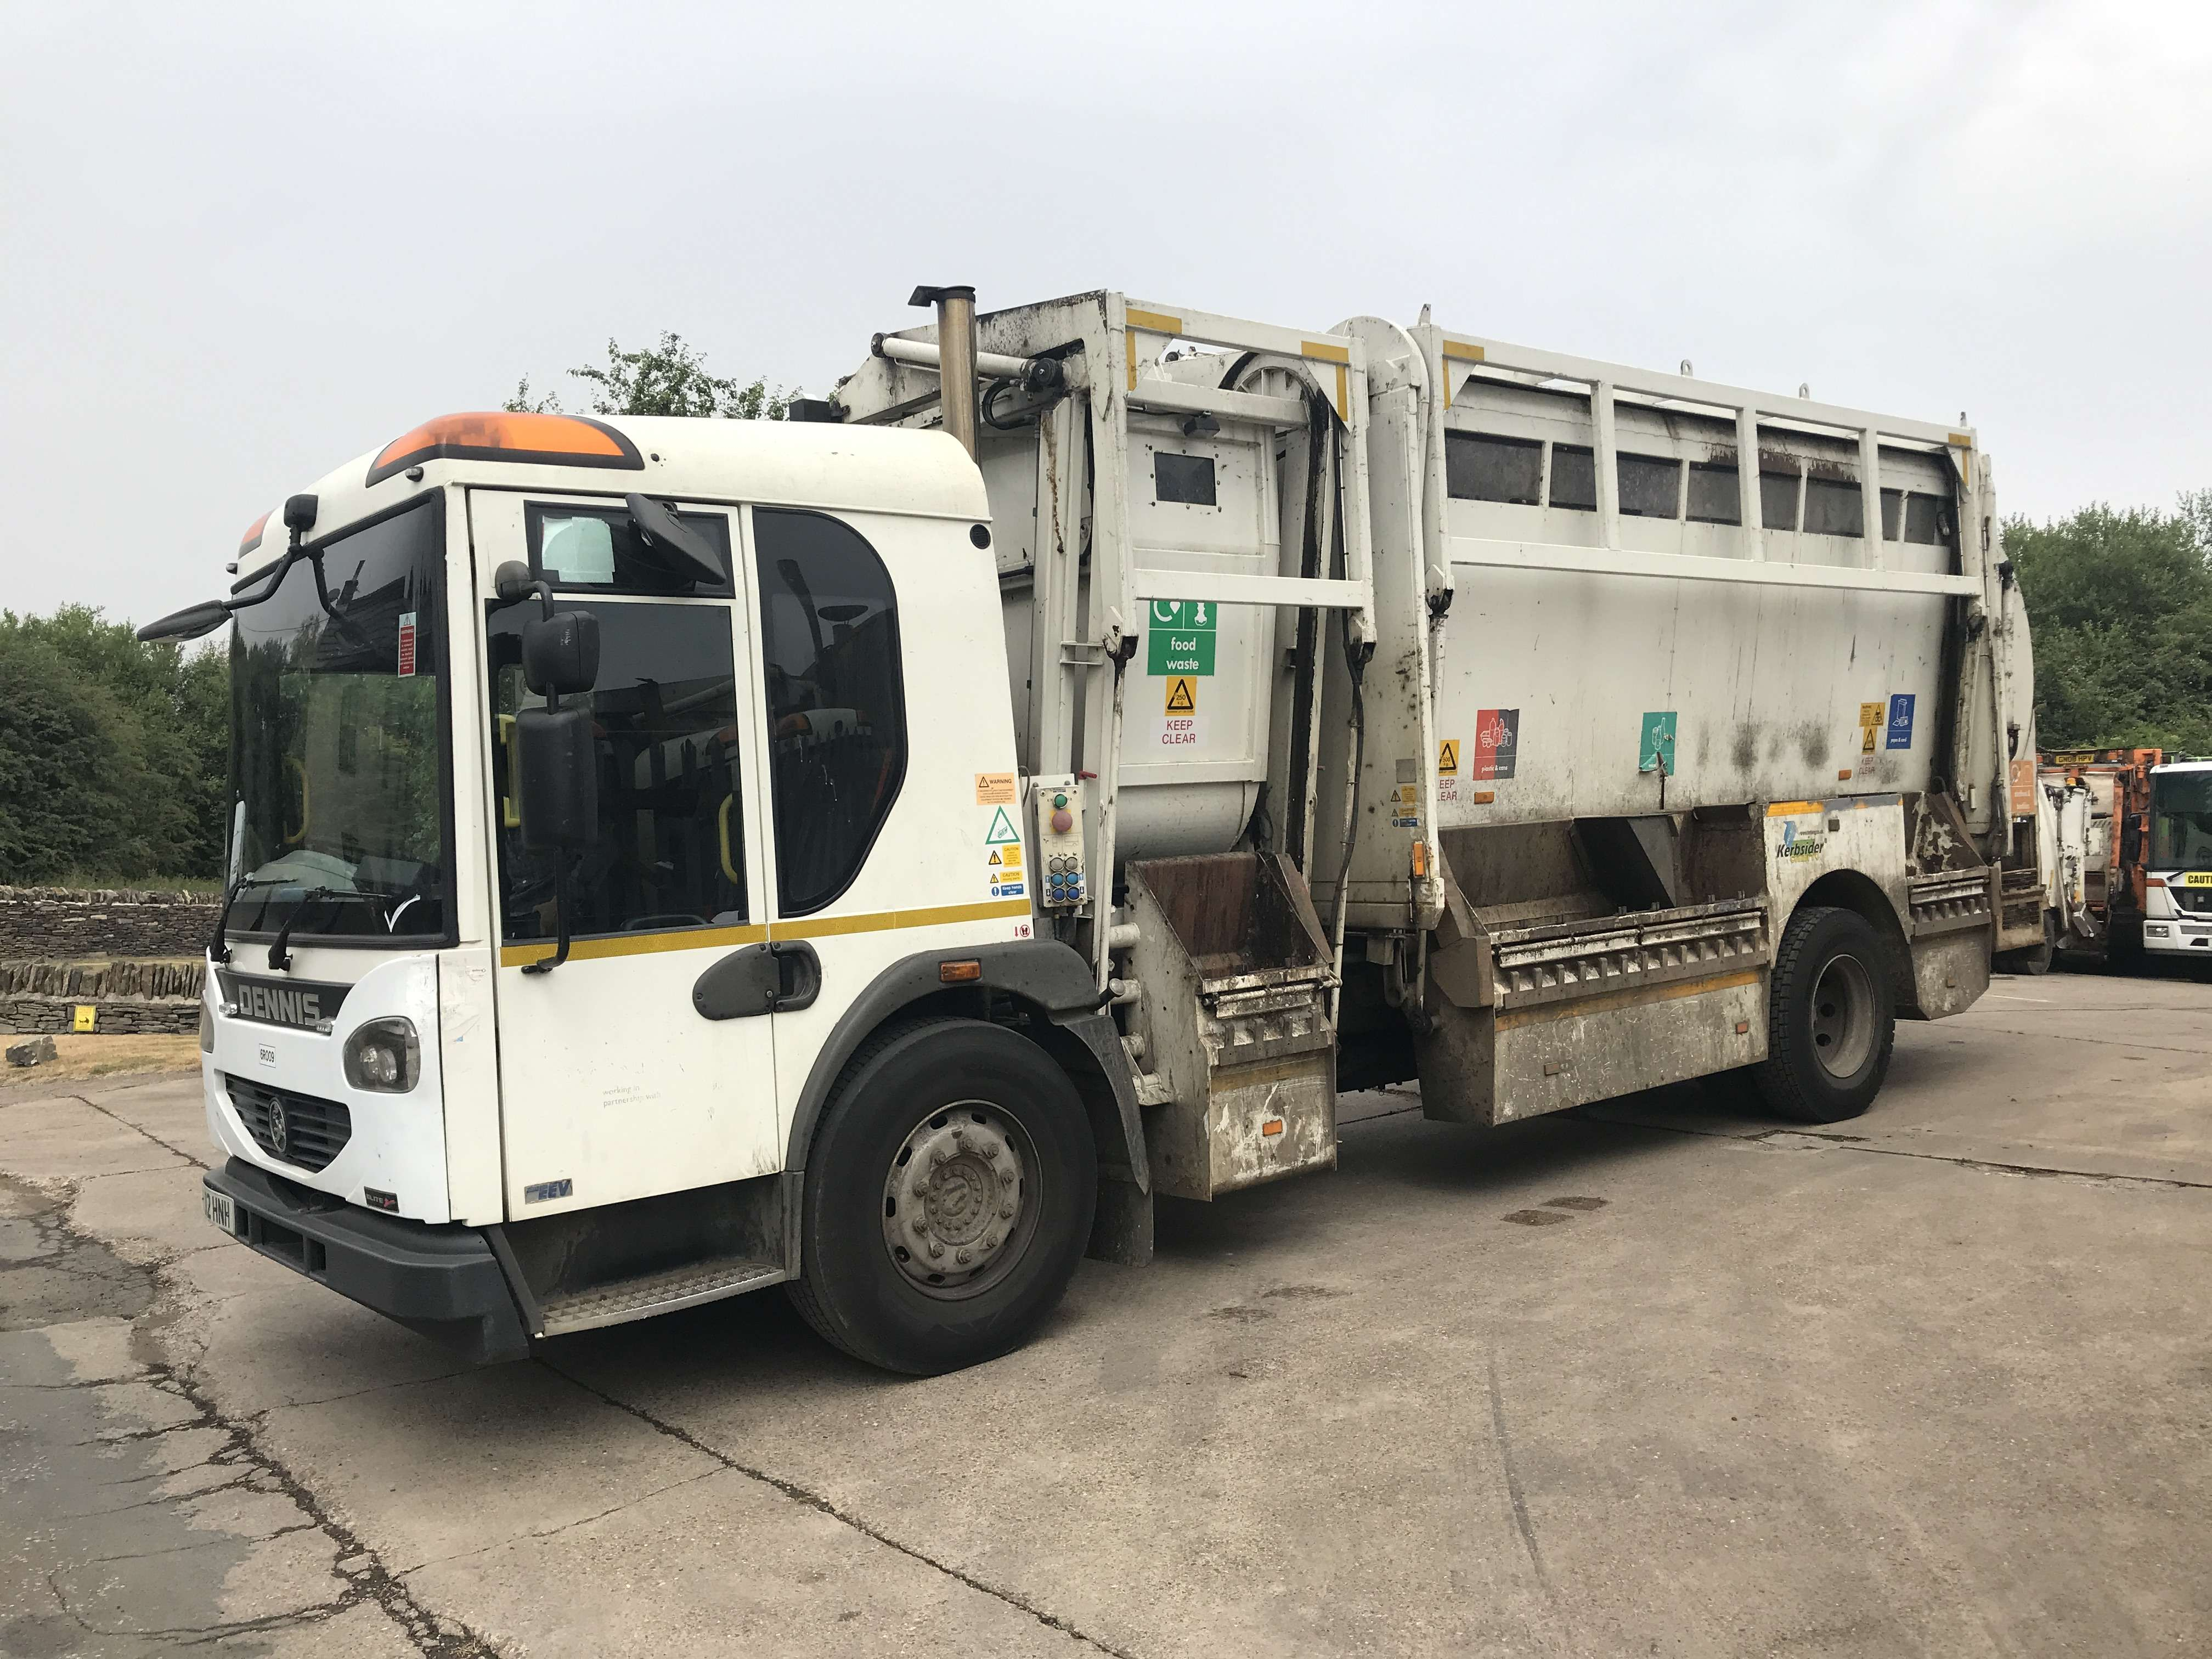 2012 Dennis Eagle kerbsider refuse truck for sale - Terberg Matec body with food pod